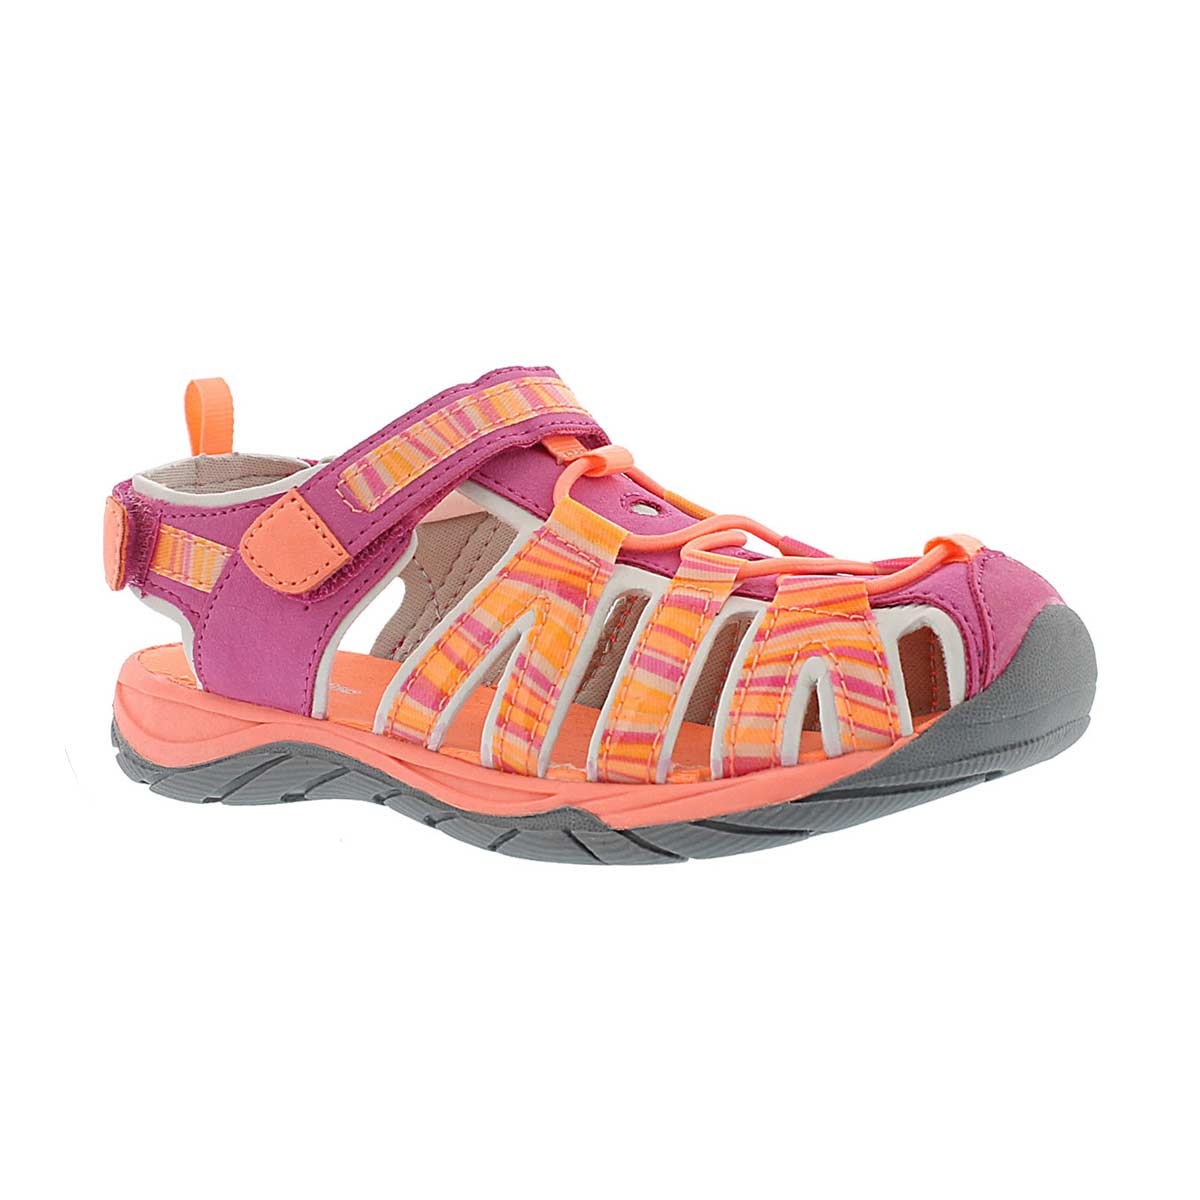 Girls' EOWYN pink closed toe sandals